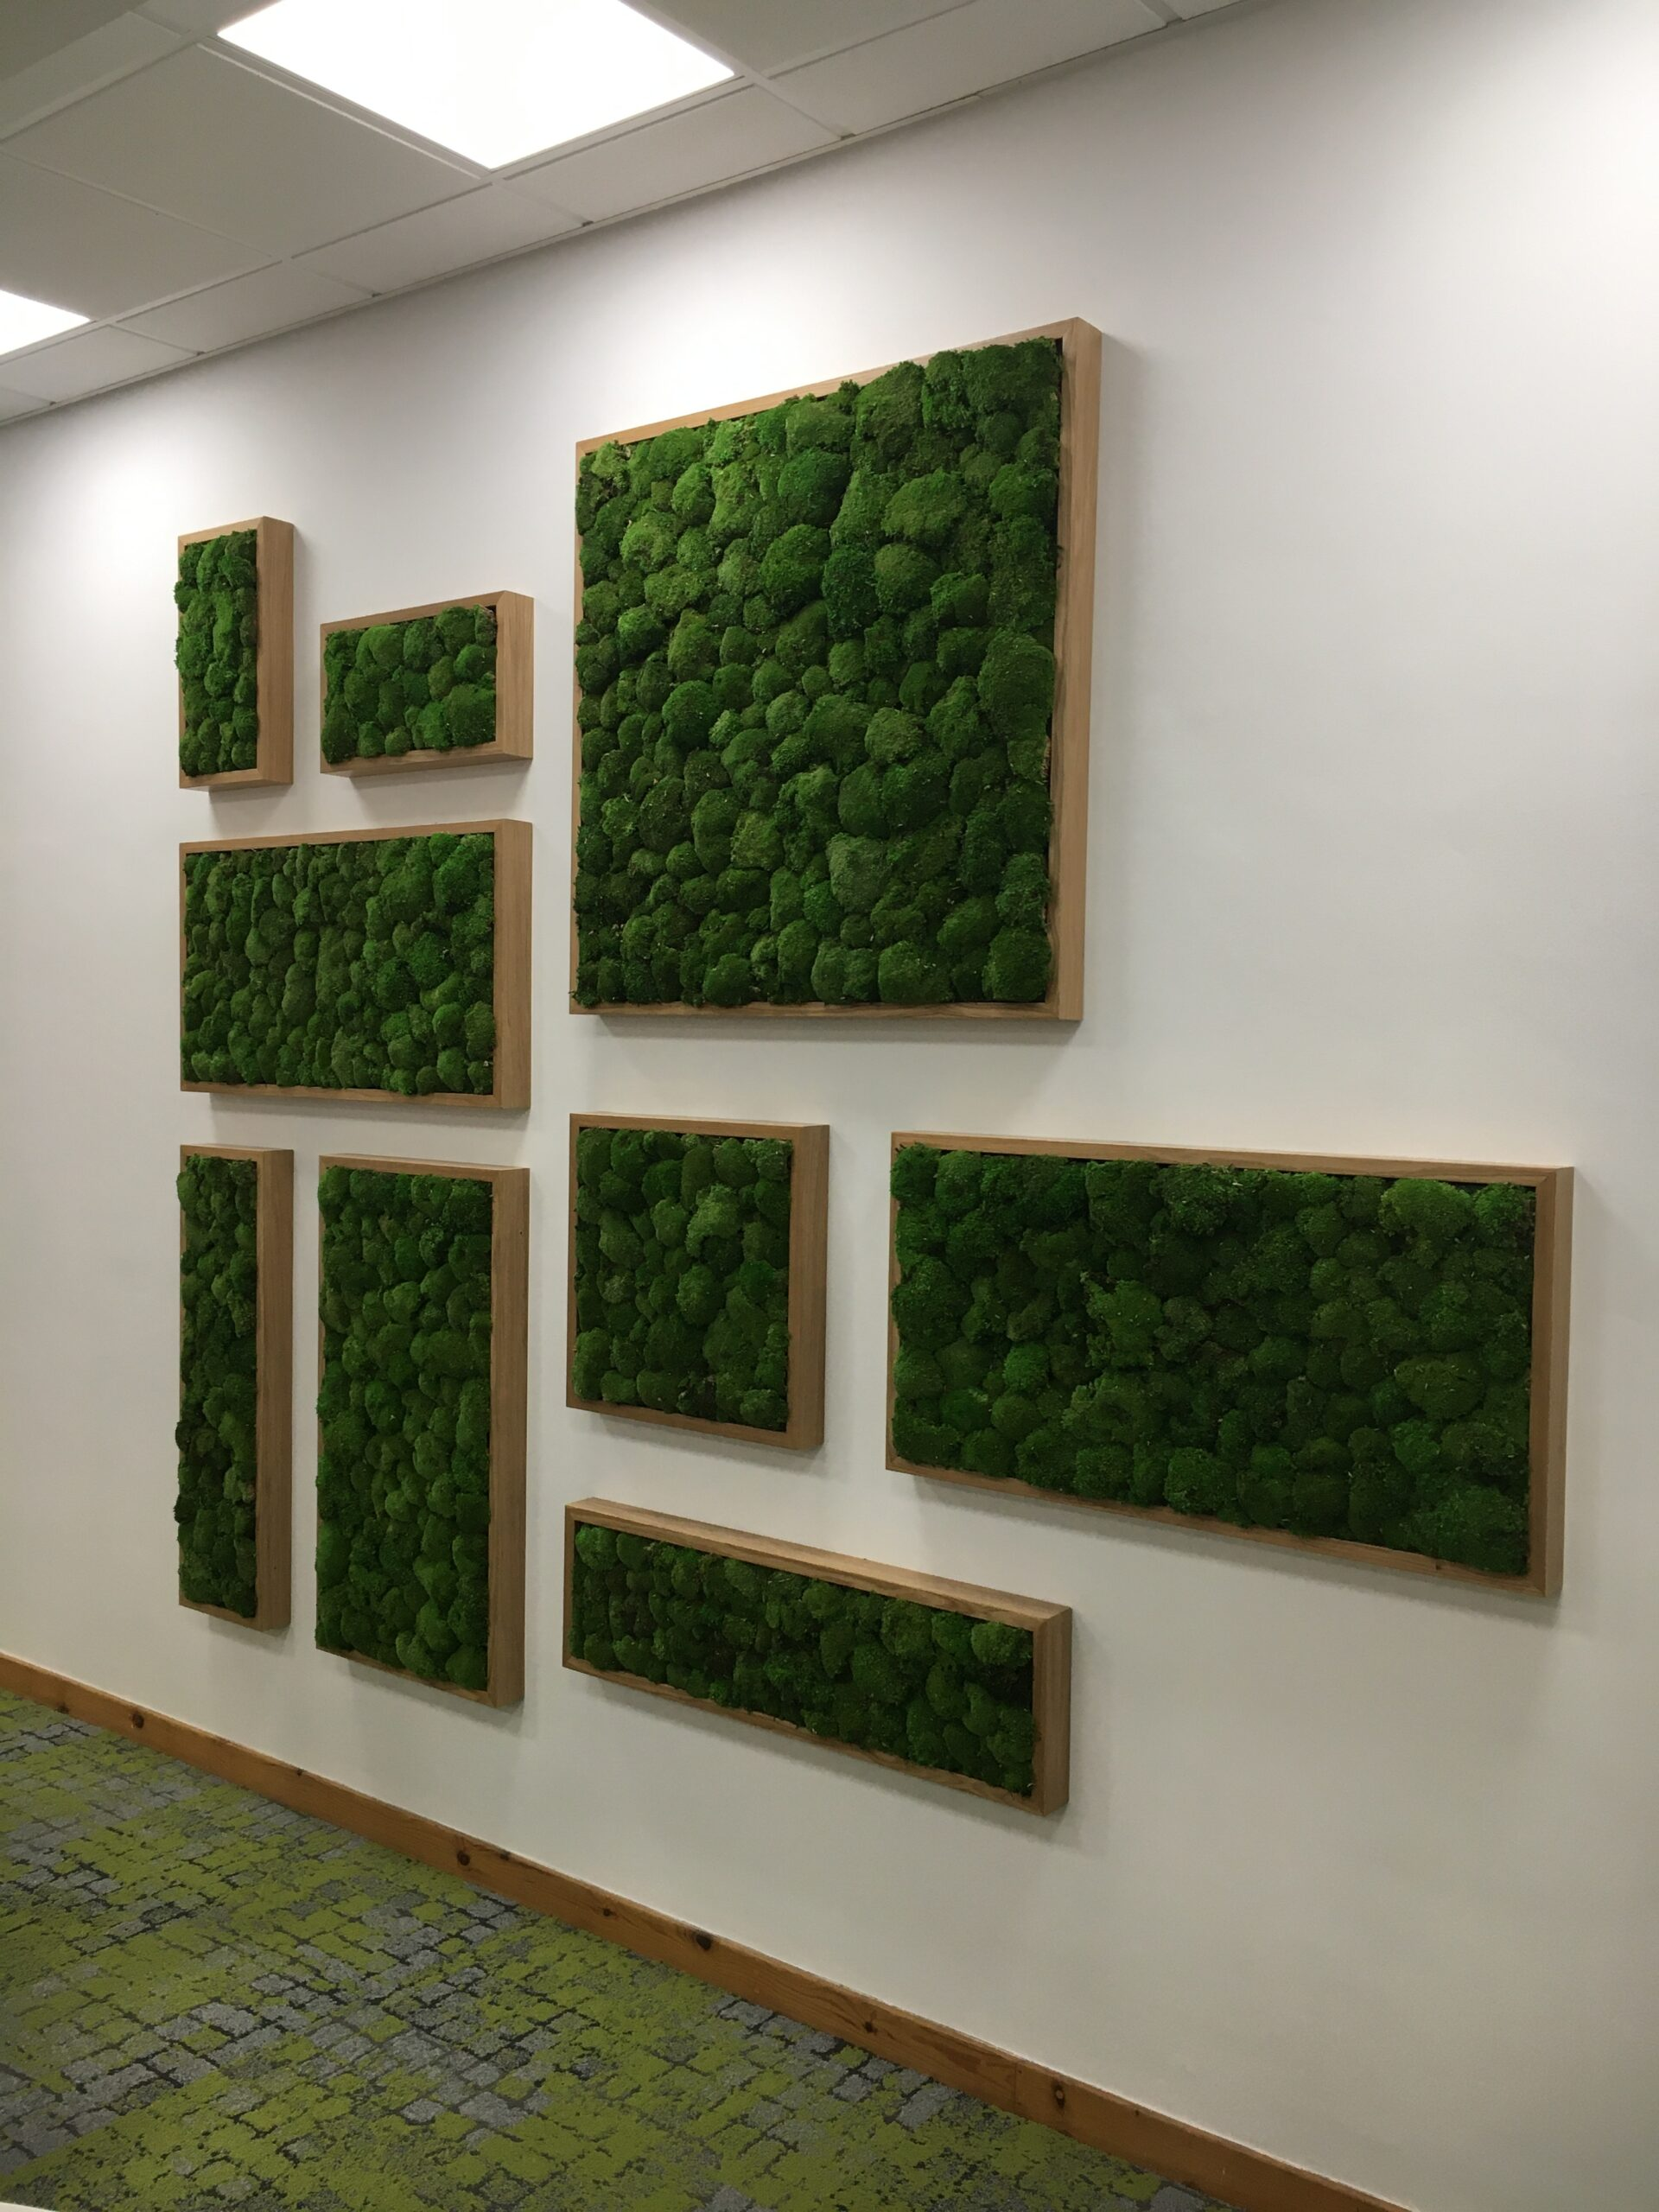 white wall with green moss inside wooden frames, hung on the wall